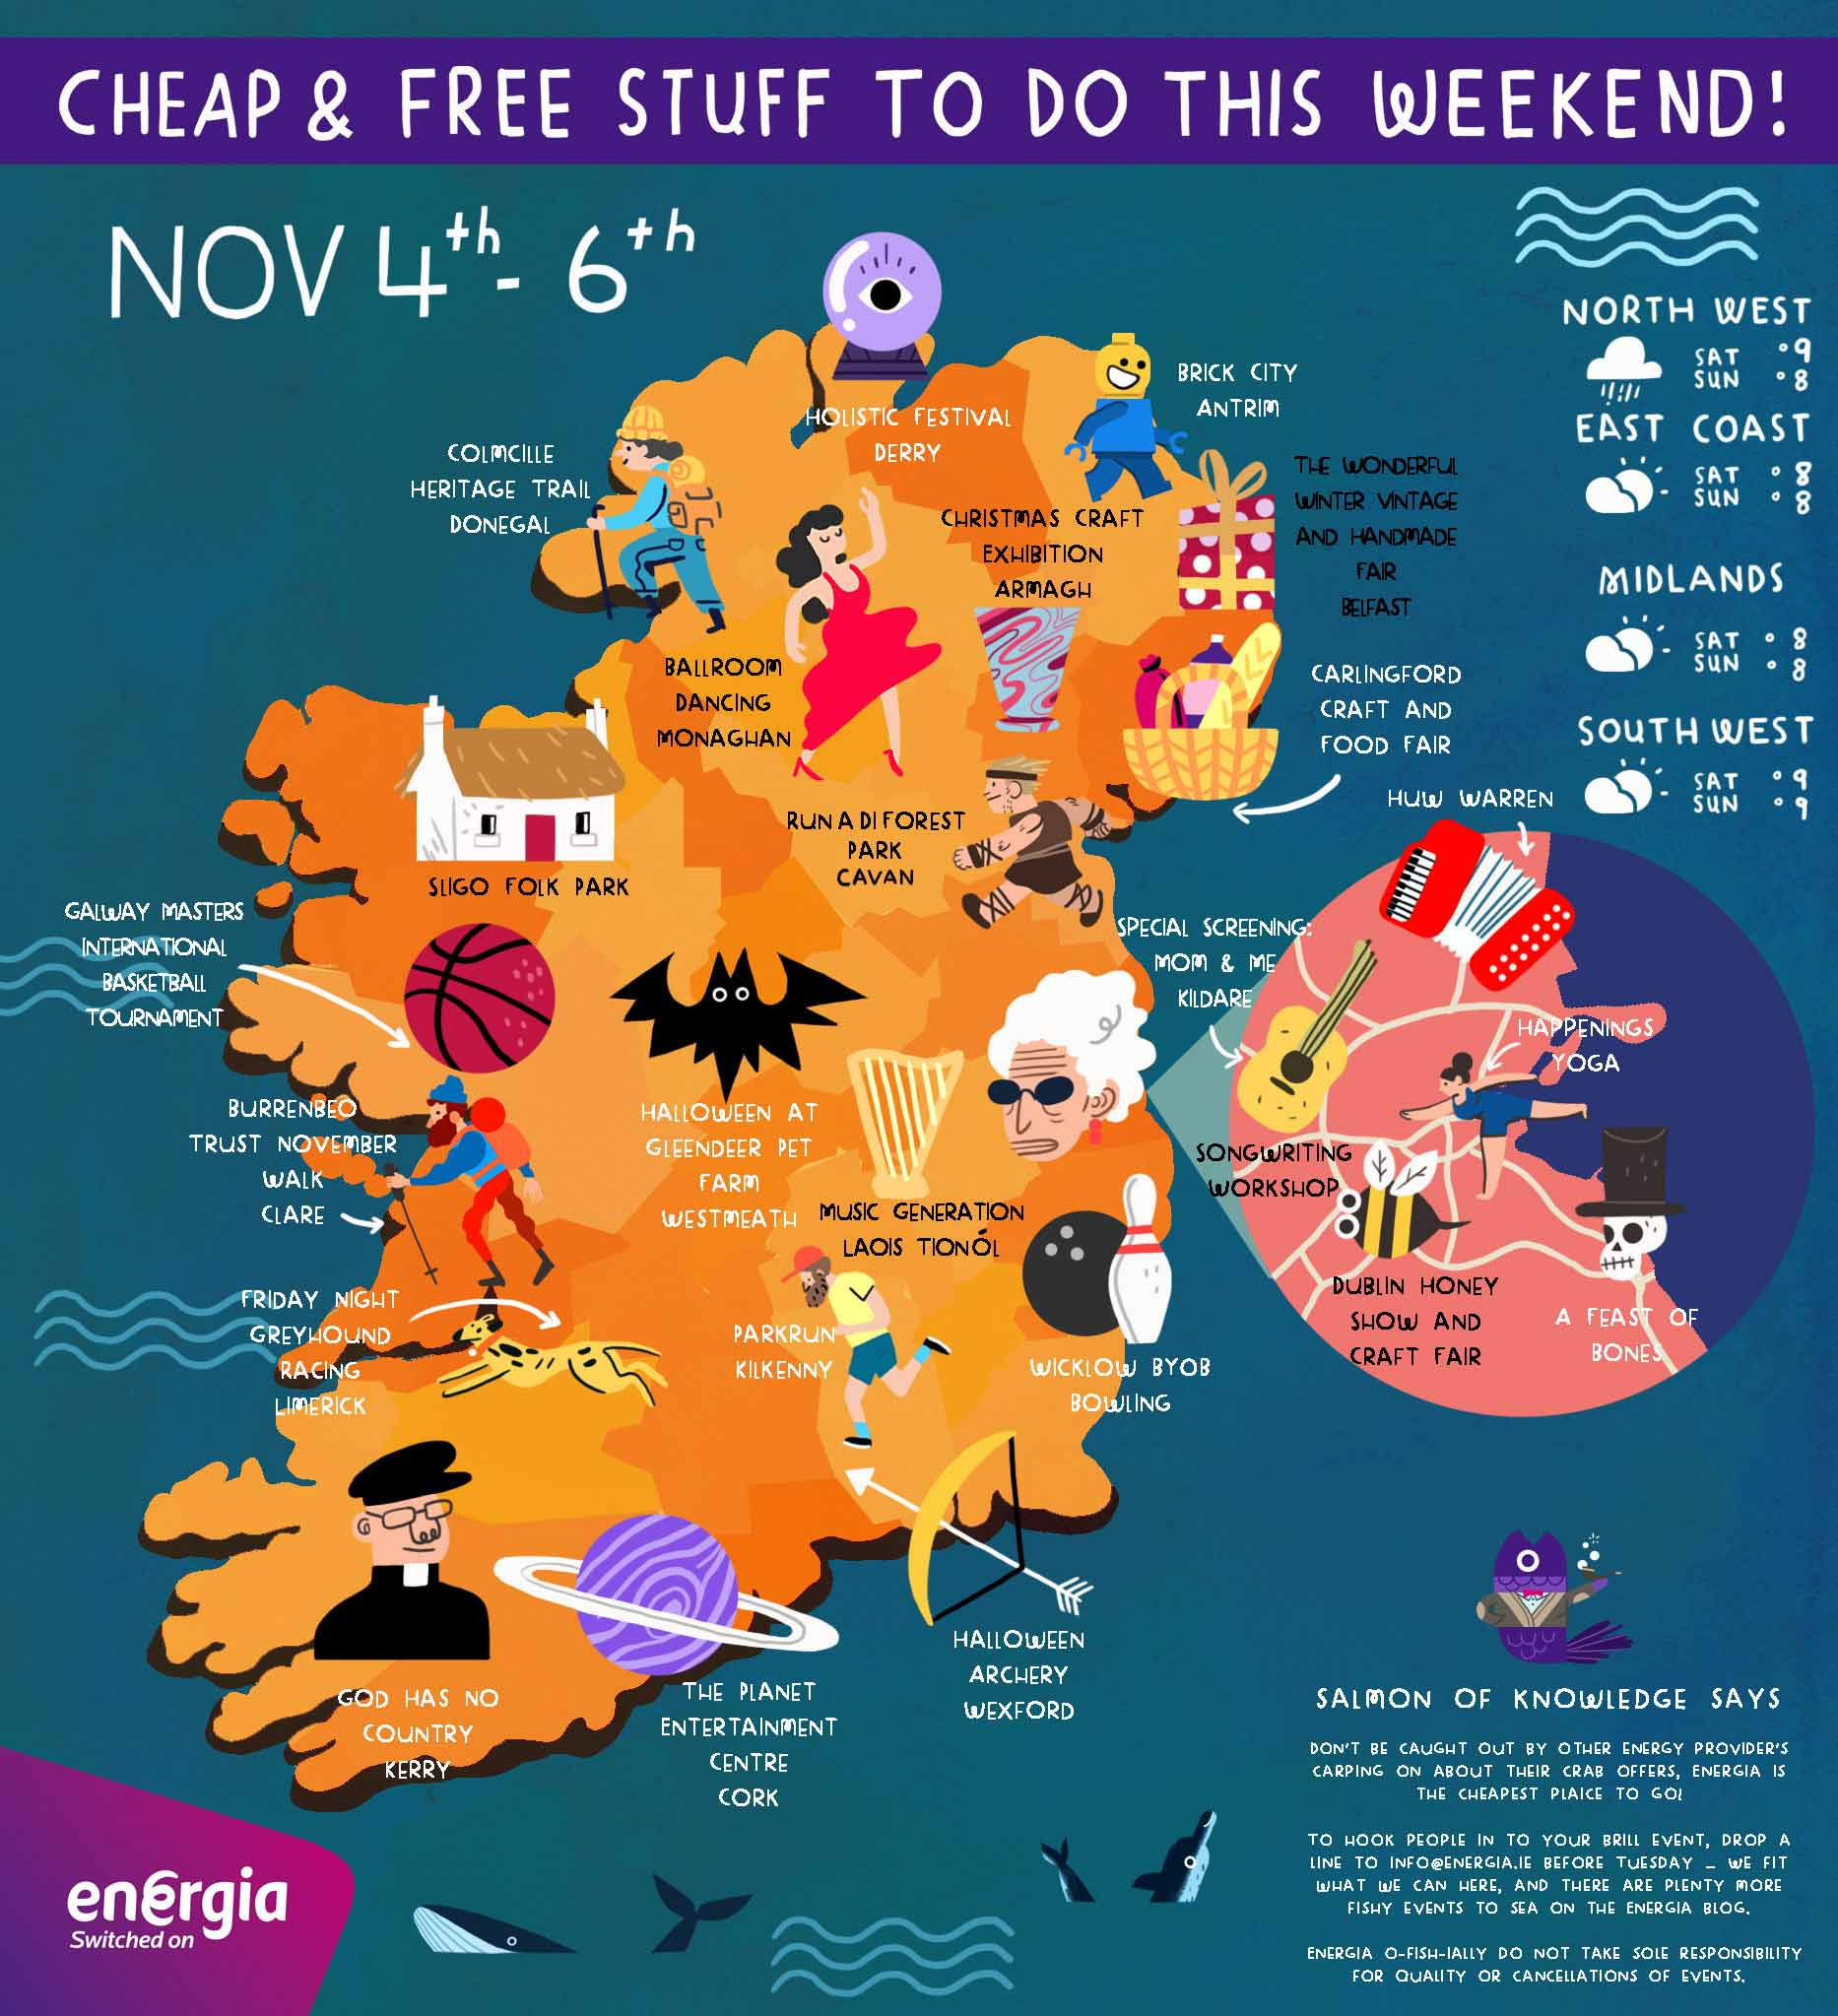 Cheap & Free stuff to do this weekend 4th - 6th November